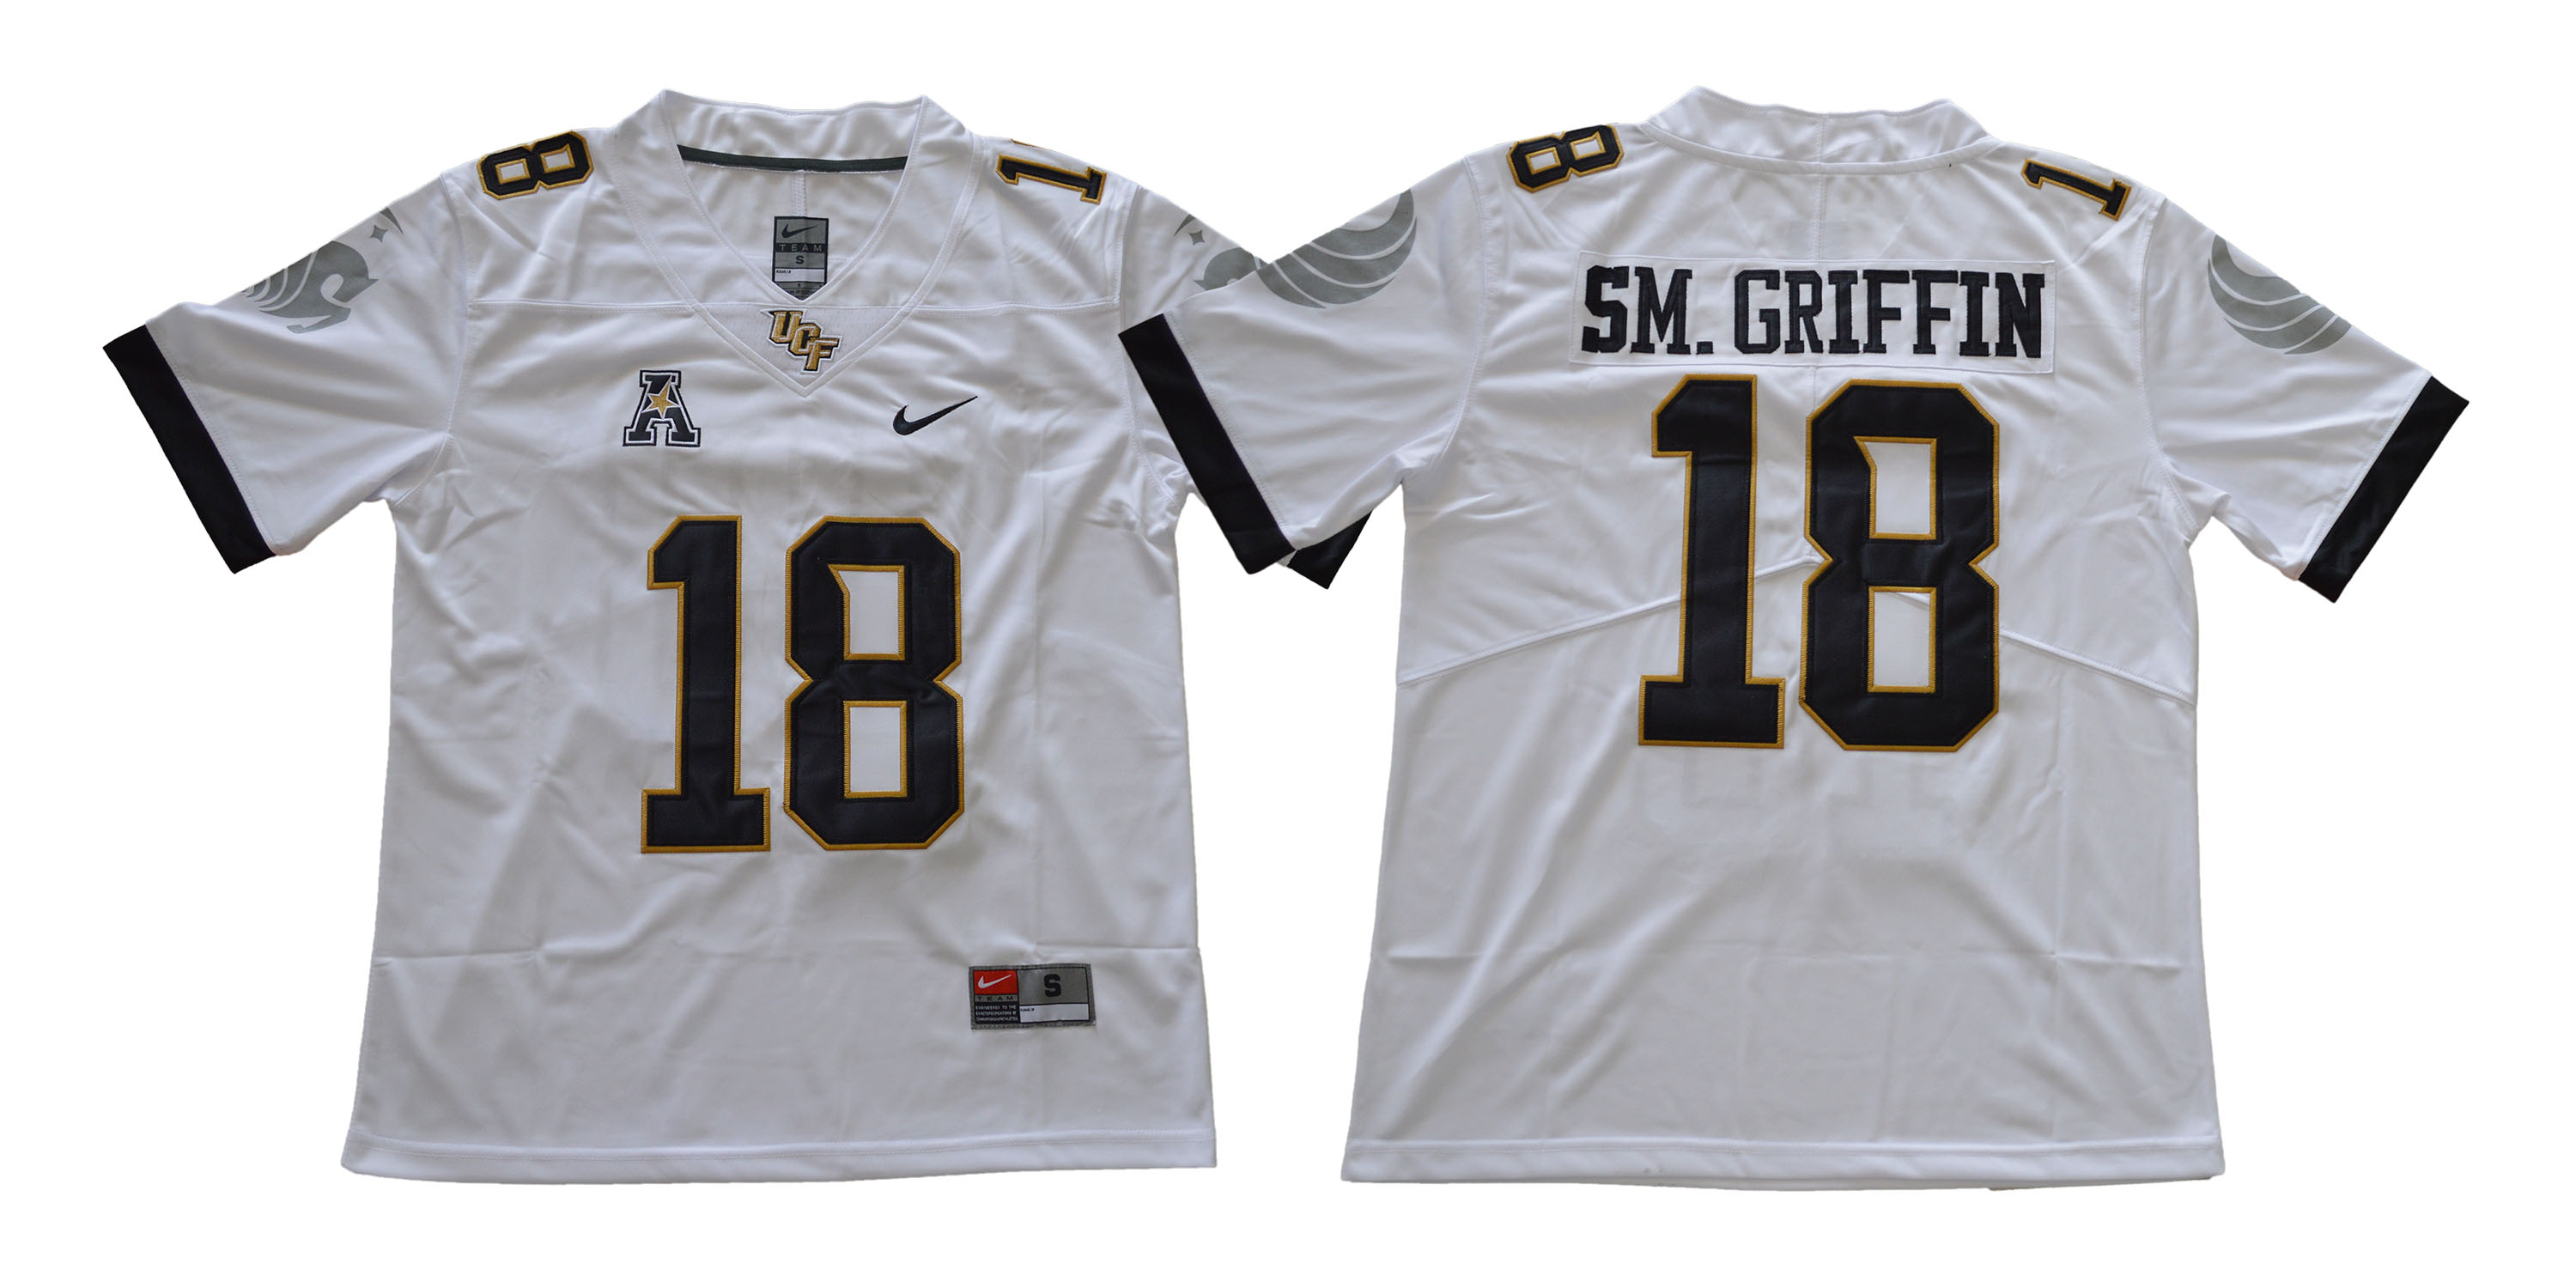 UCF Knights 18 Shaquem Griffin White College Football Jersey